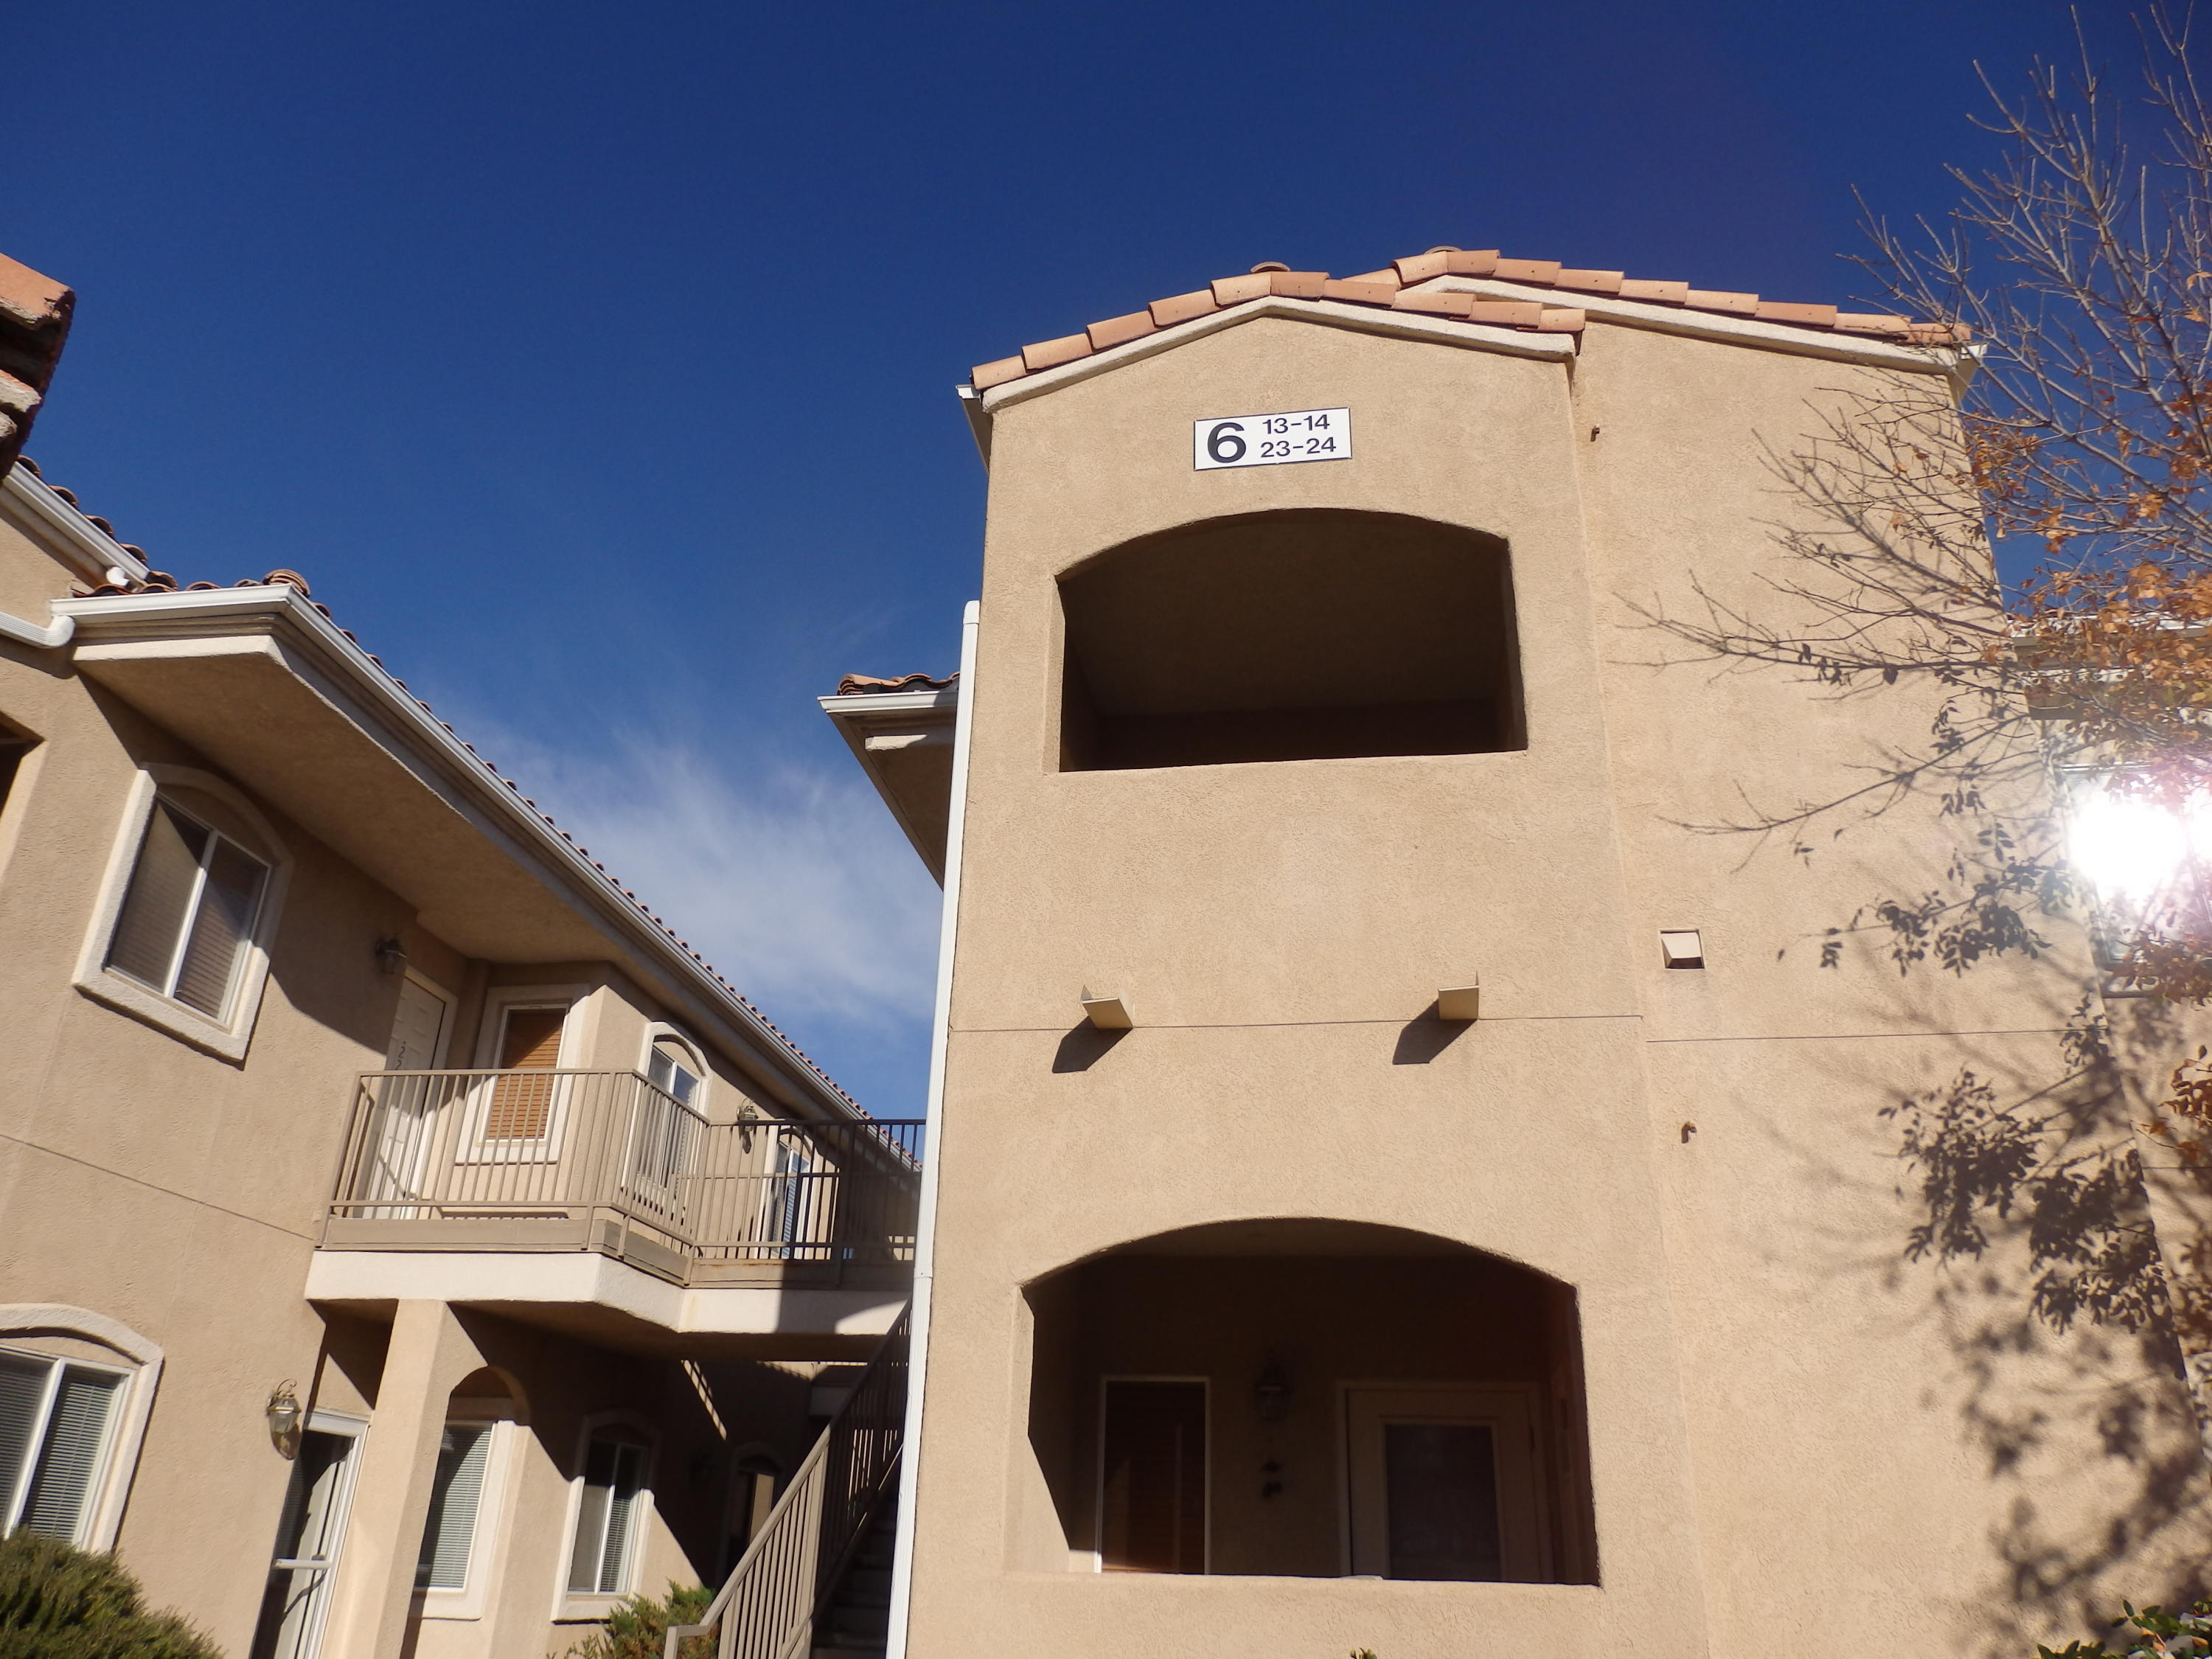 Three bedroom upstairs unit. Clean and neat. View of Sandias From balcony. Move in ready.